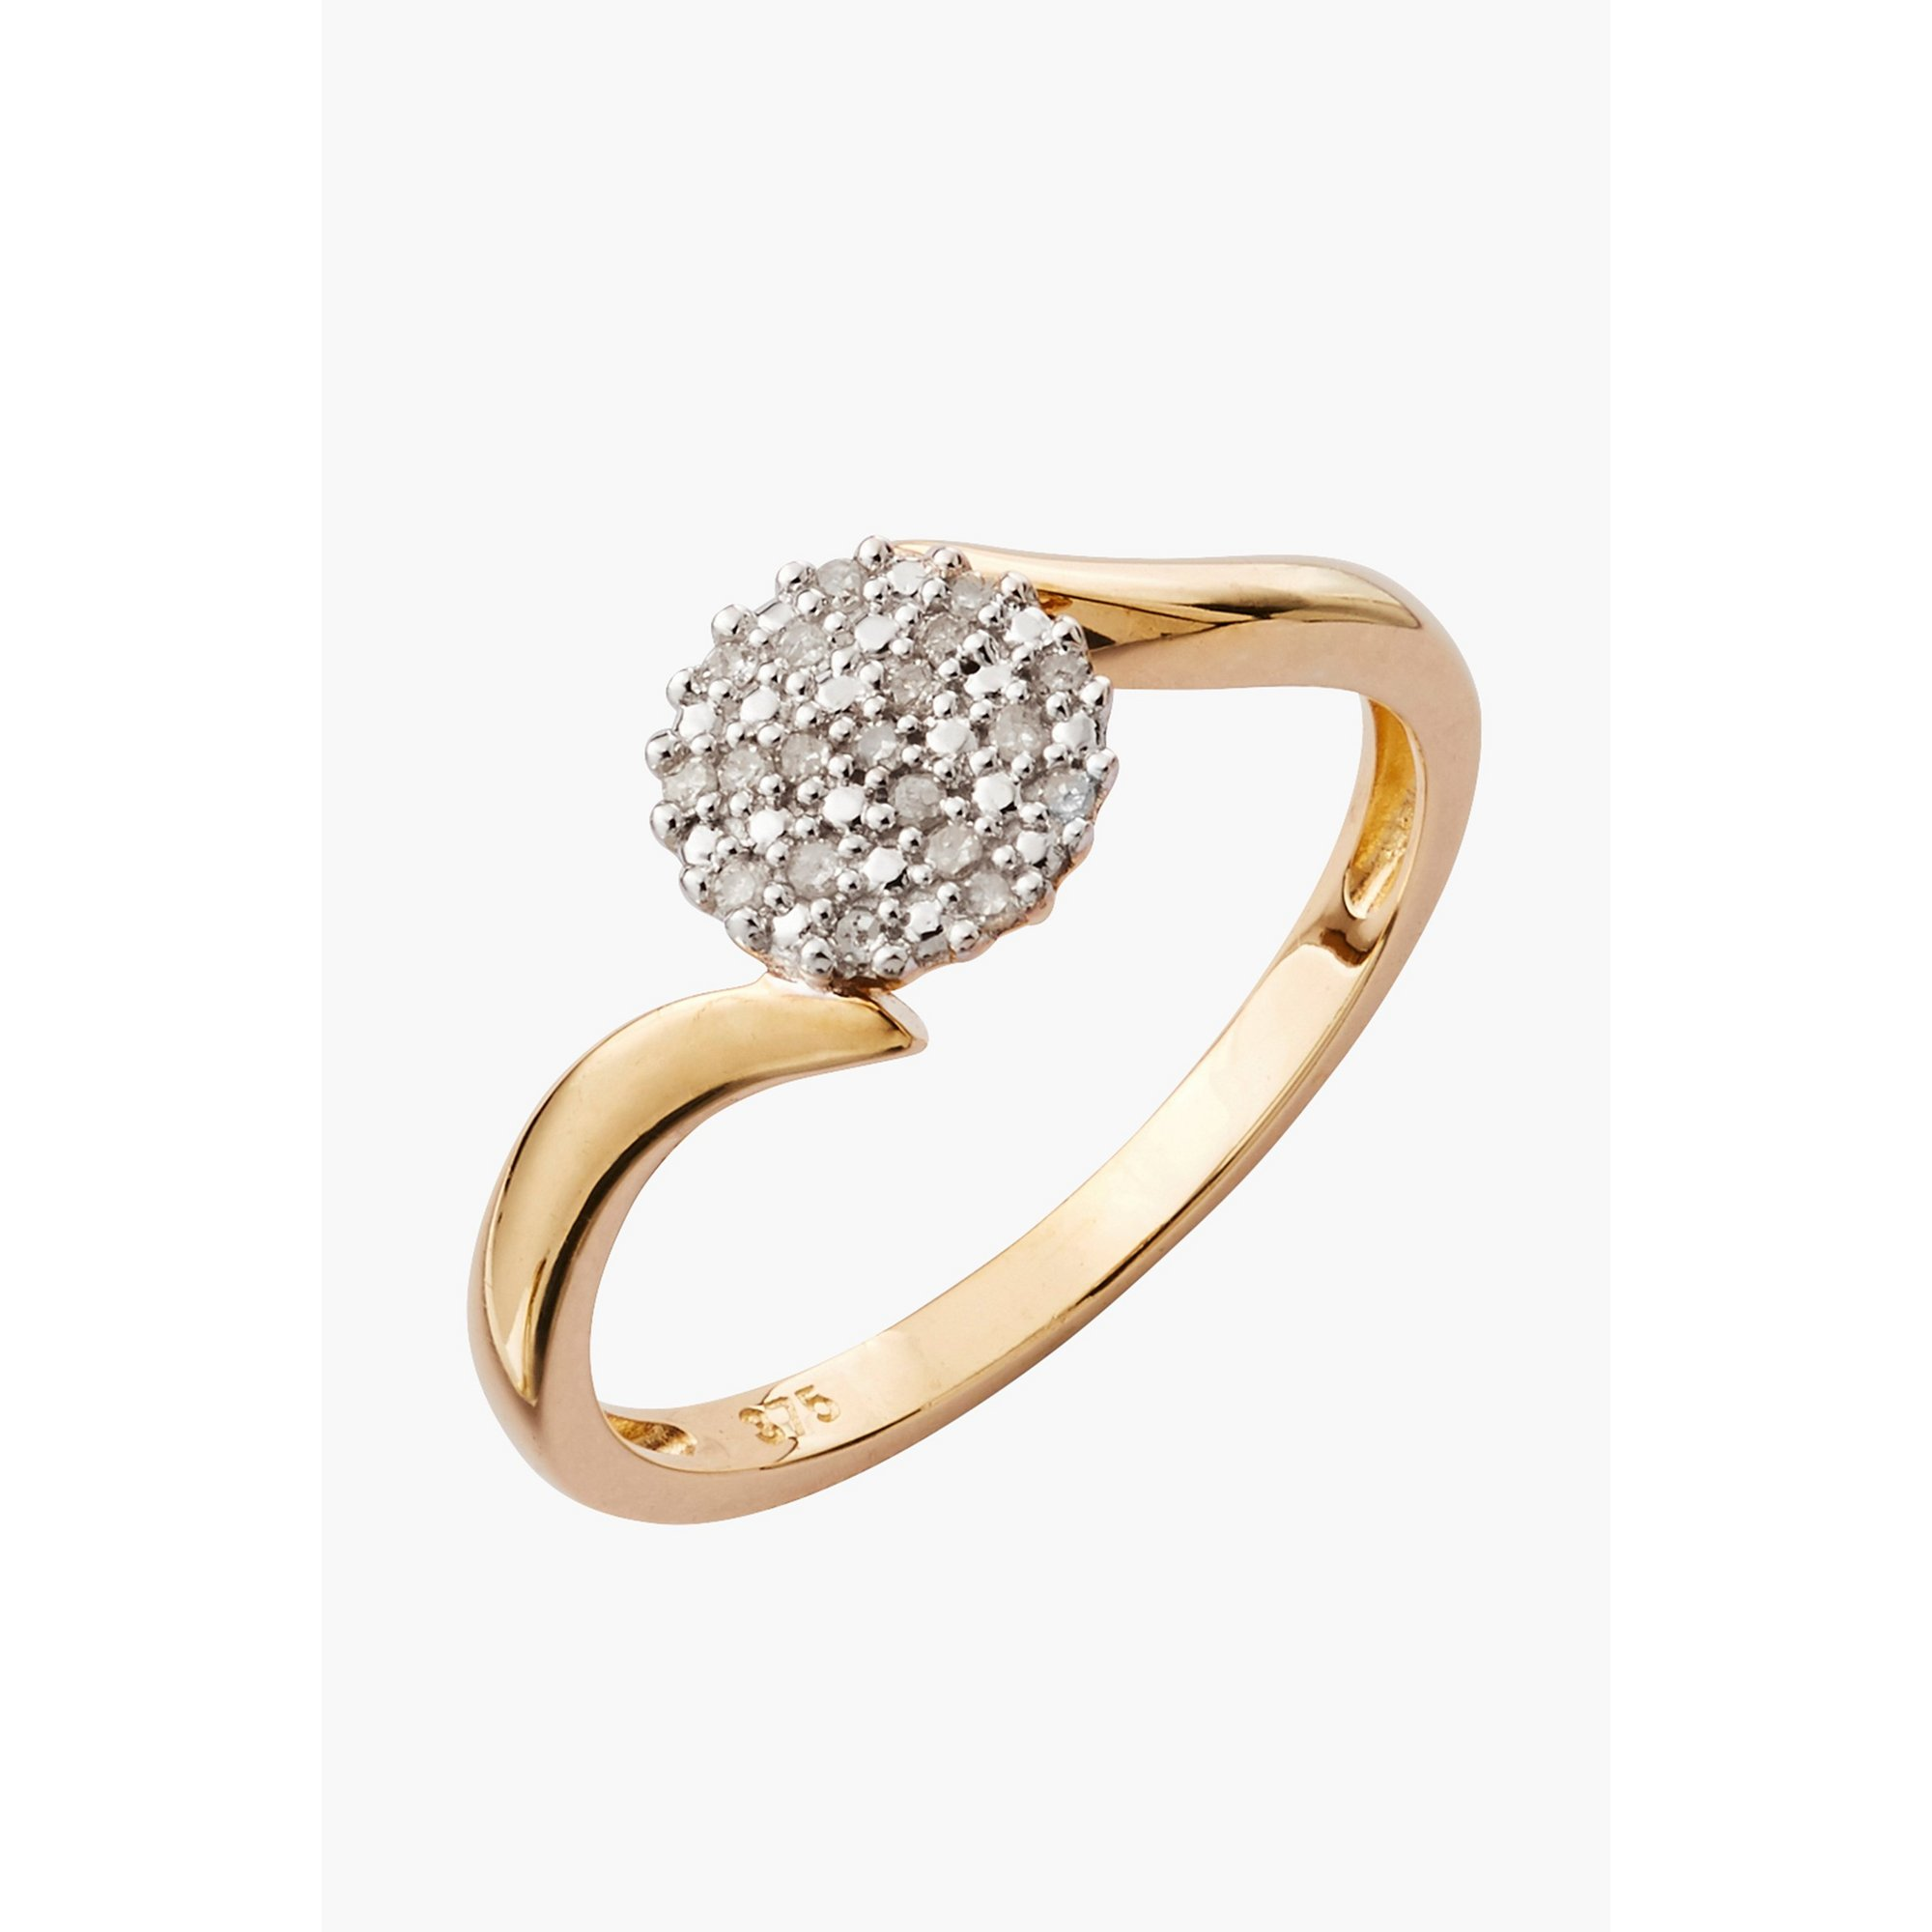 Image of 9ct Gold 0.10ct Diamond Cluster Ring